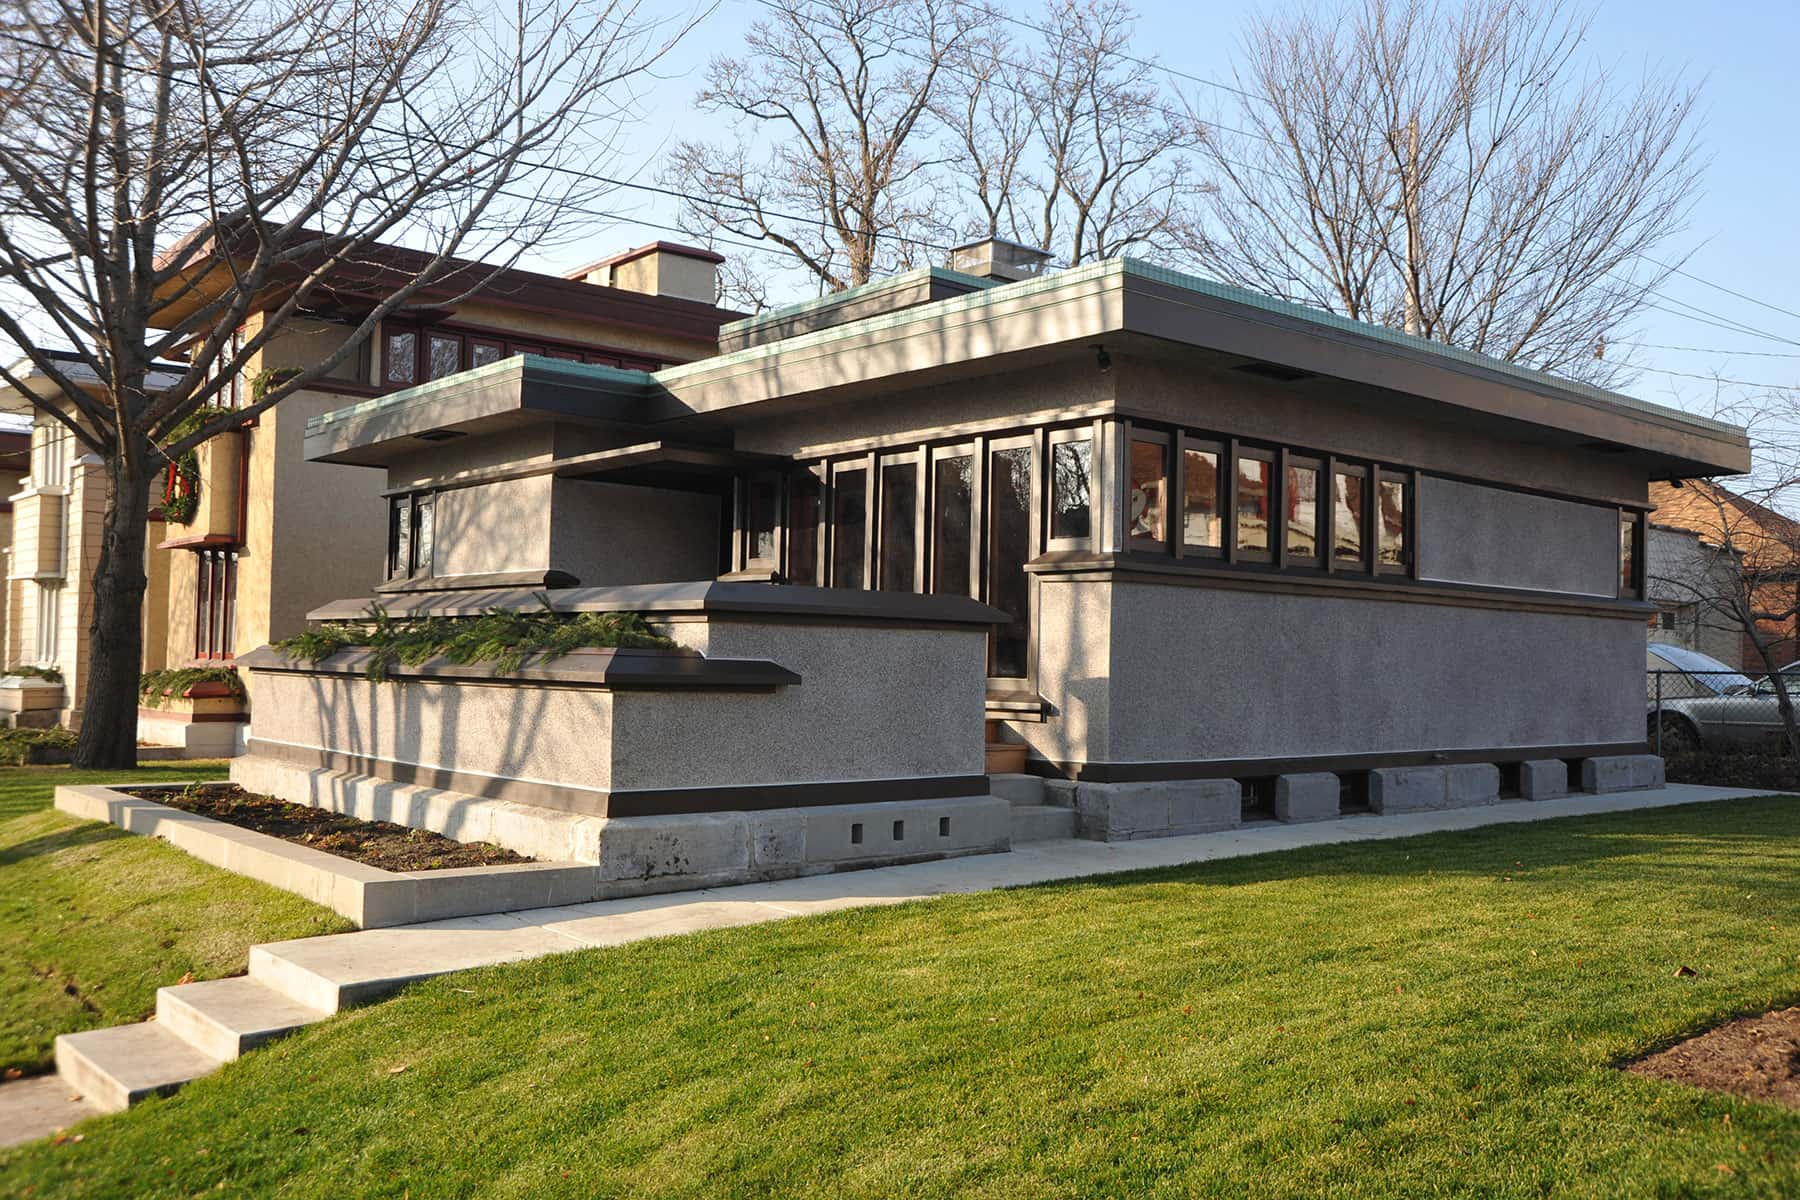 Milwaukee s frank lloyd wright affordable homes turn 100 - Frank lloyd wright designs ...